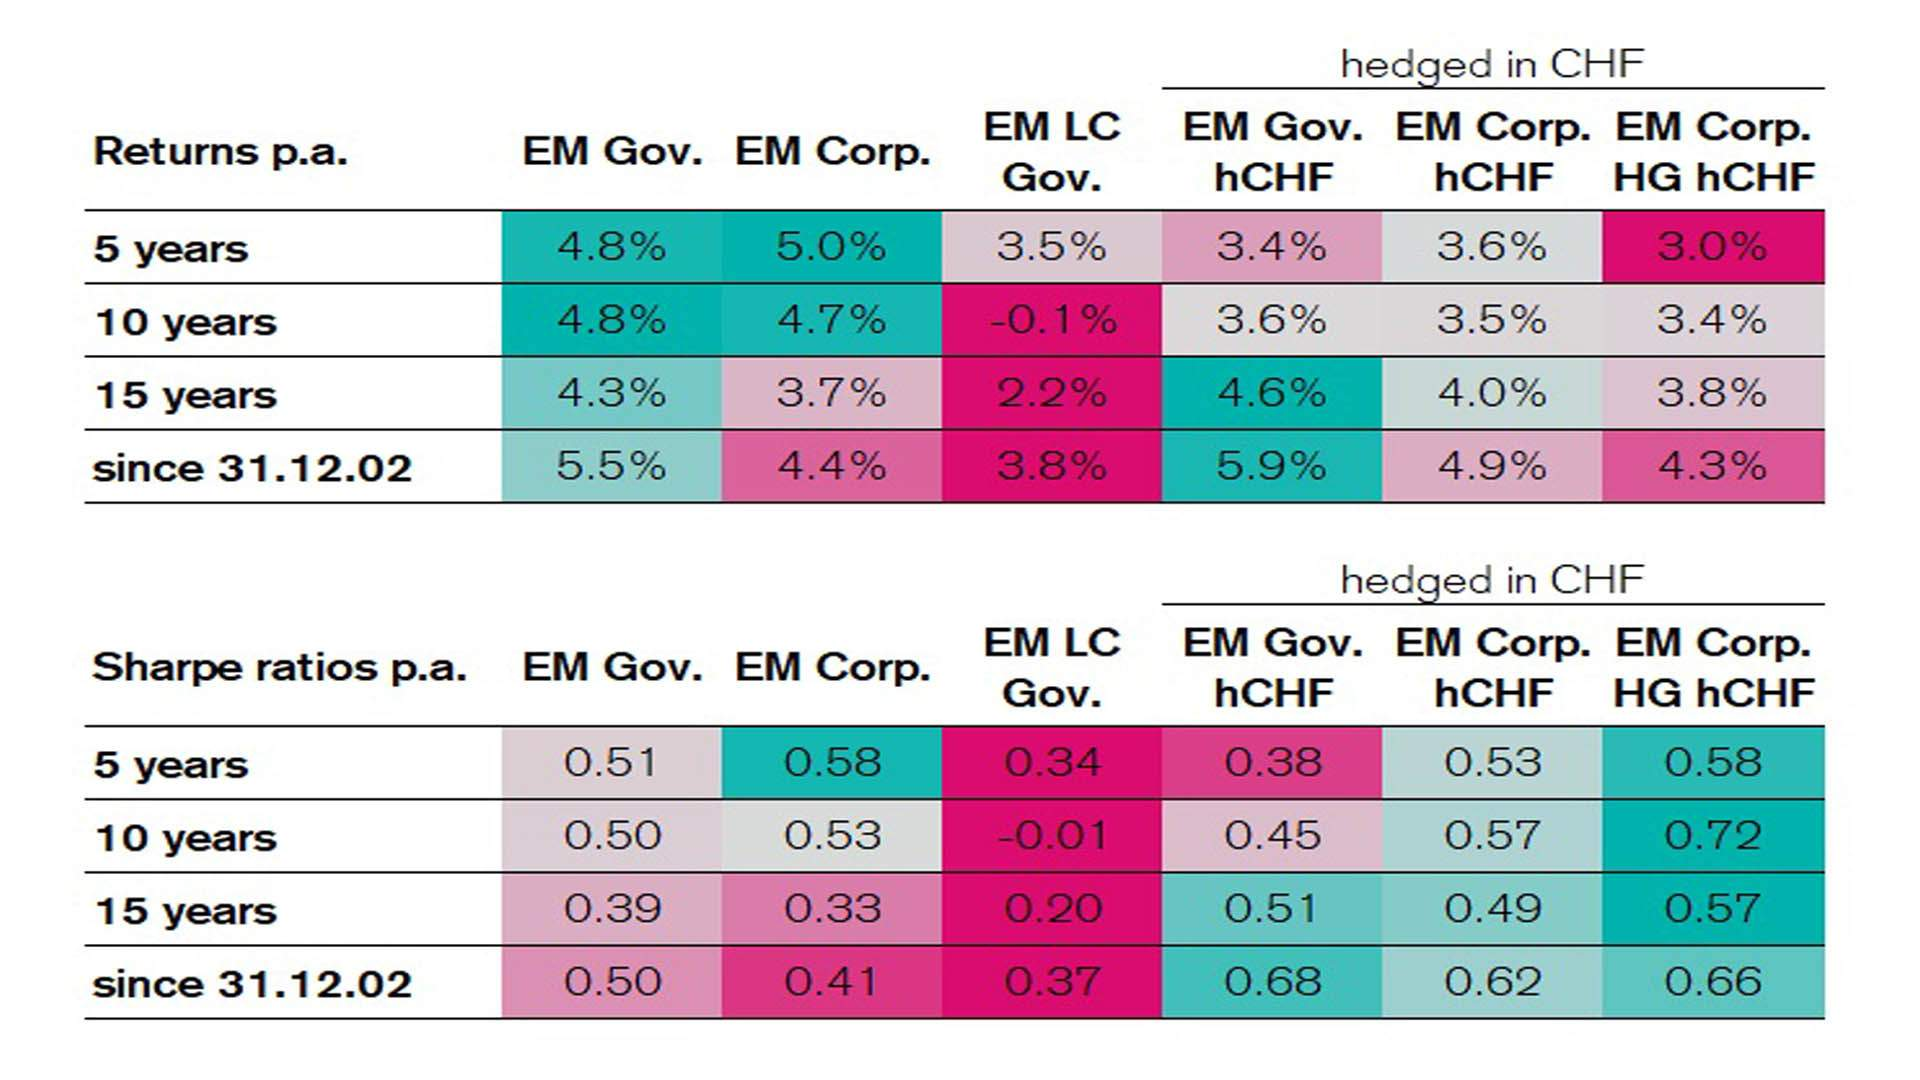 Since the end of 2002 and over different periods, both the returns and sharpe ratios between bonds in local currency, hard currency as well as hedged in CHF vary.